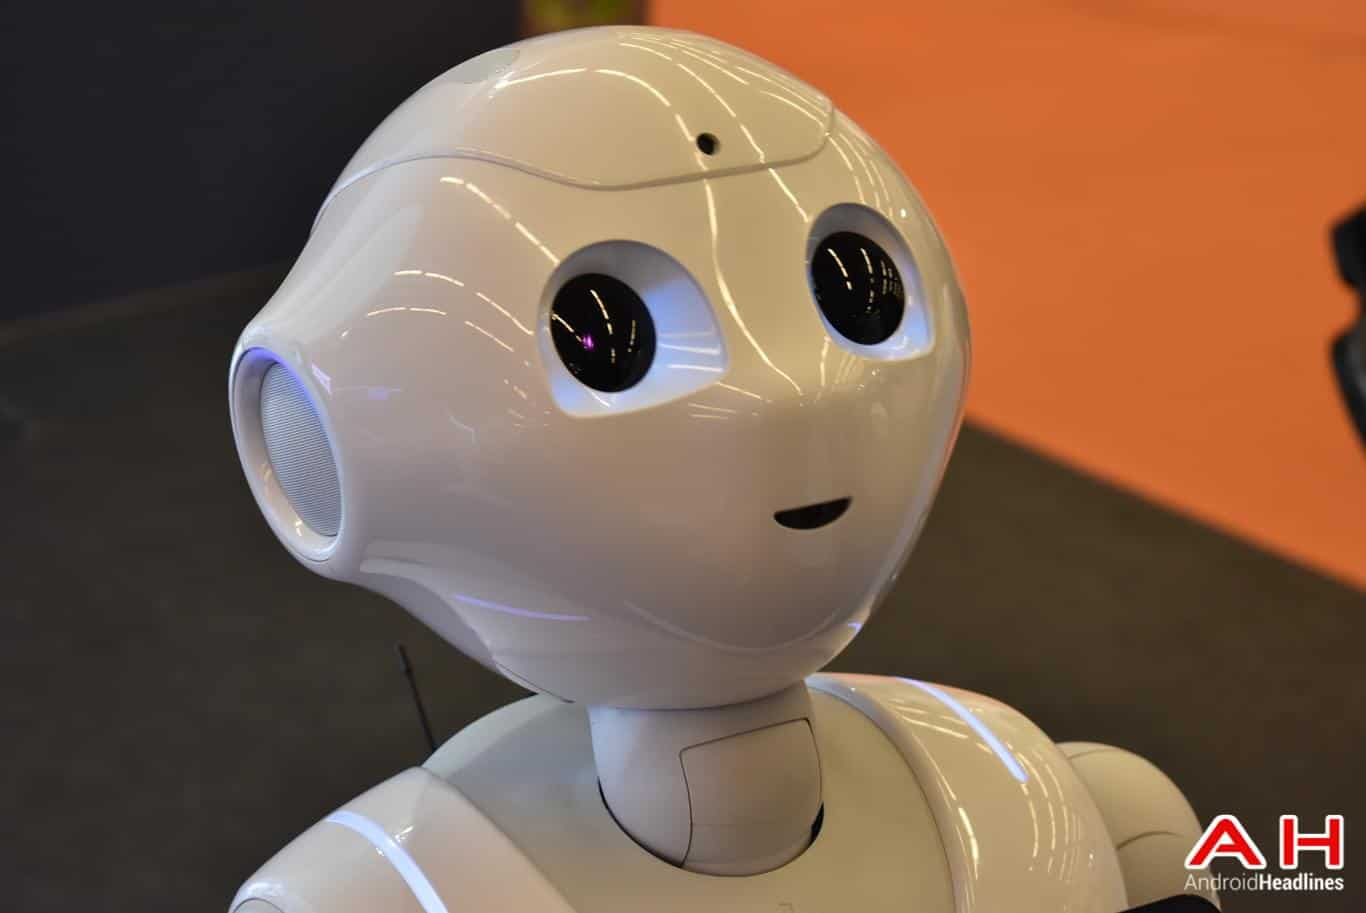 SoftBank Pepper Robot AH 12